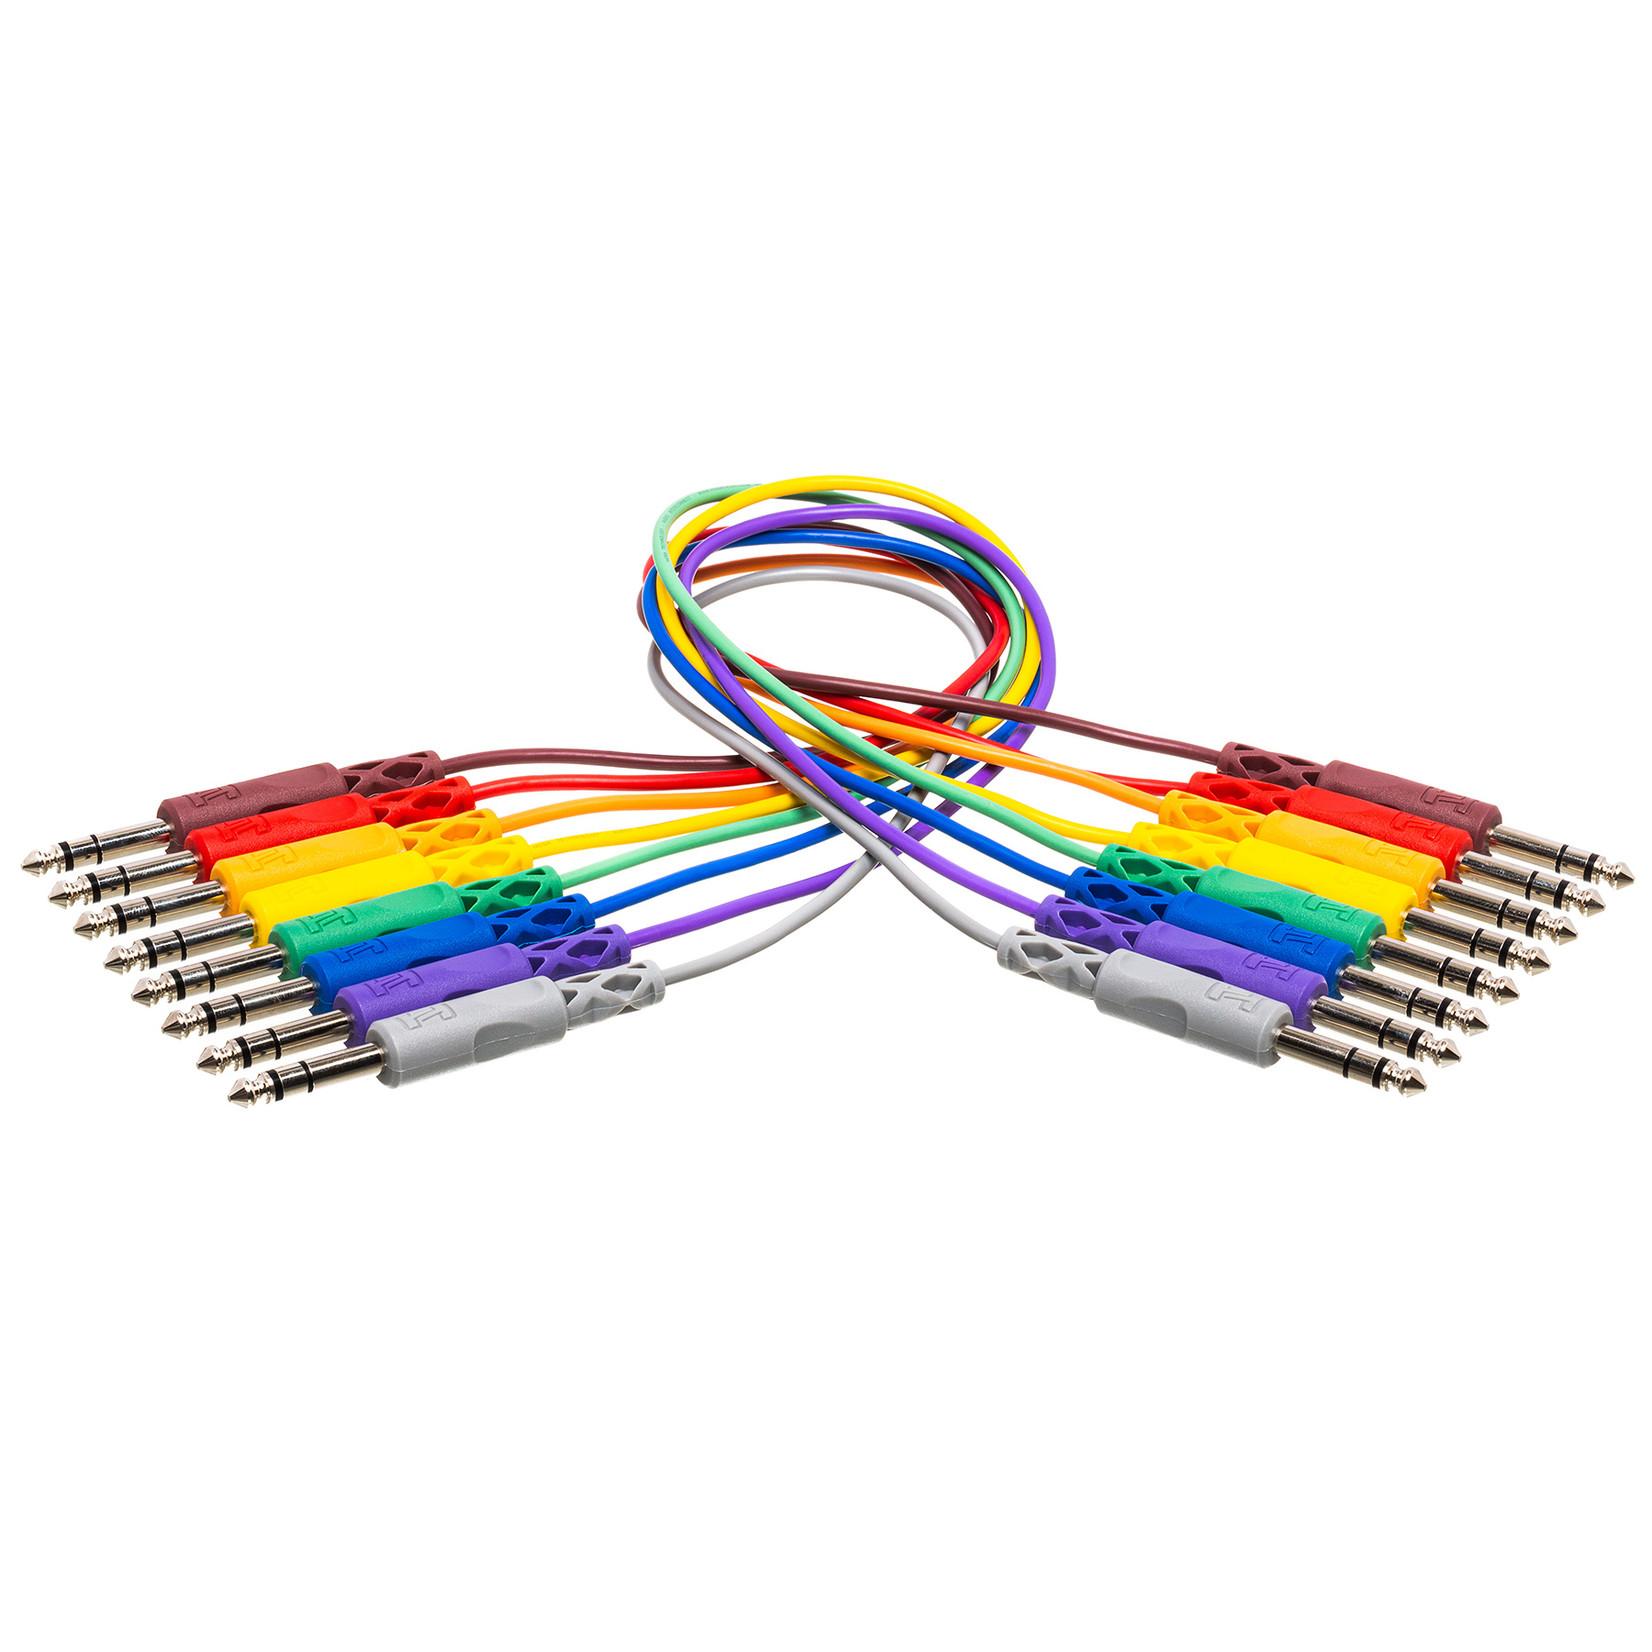 """Hosa Hosa CSS845 8-Pack of 1.5-Foot (18"""") Patch Cables w/ 1/4"""" Balanced/TRS/Stereo Plugs, Assorted Colors"""